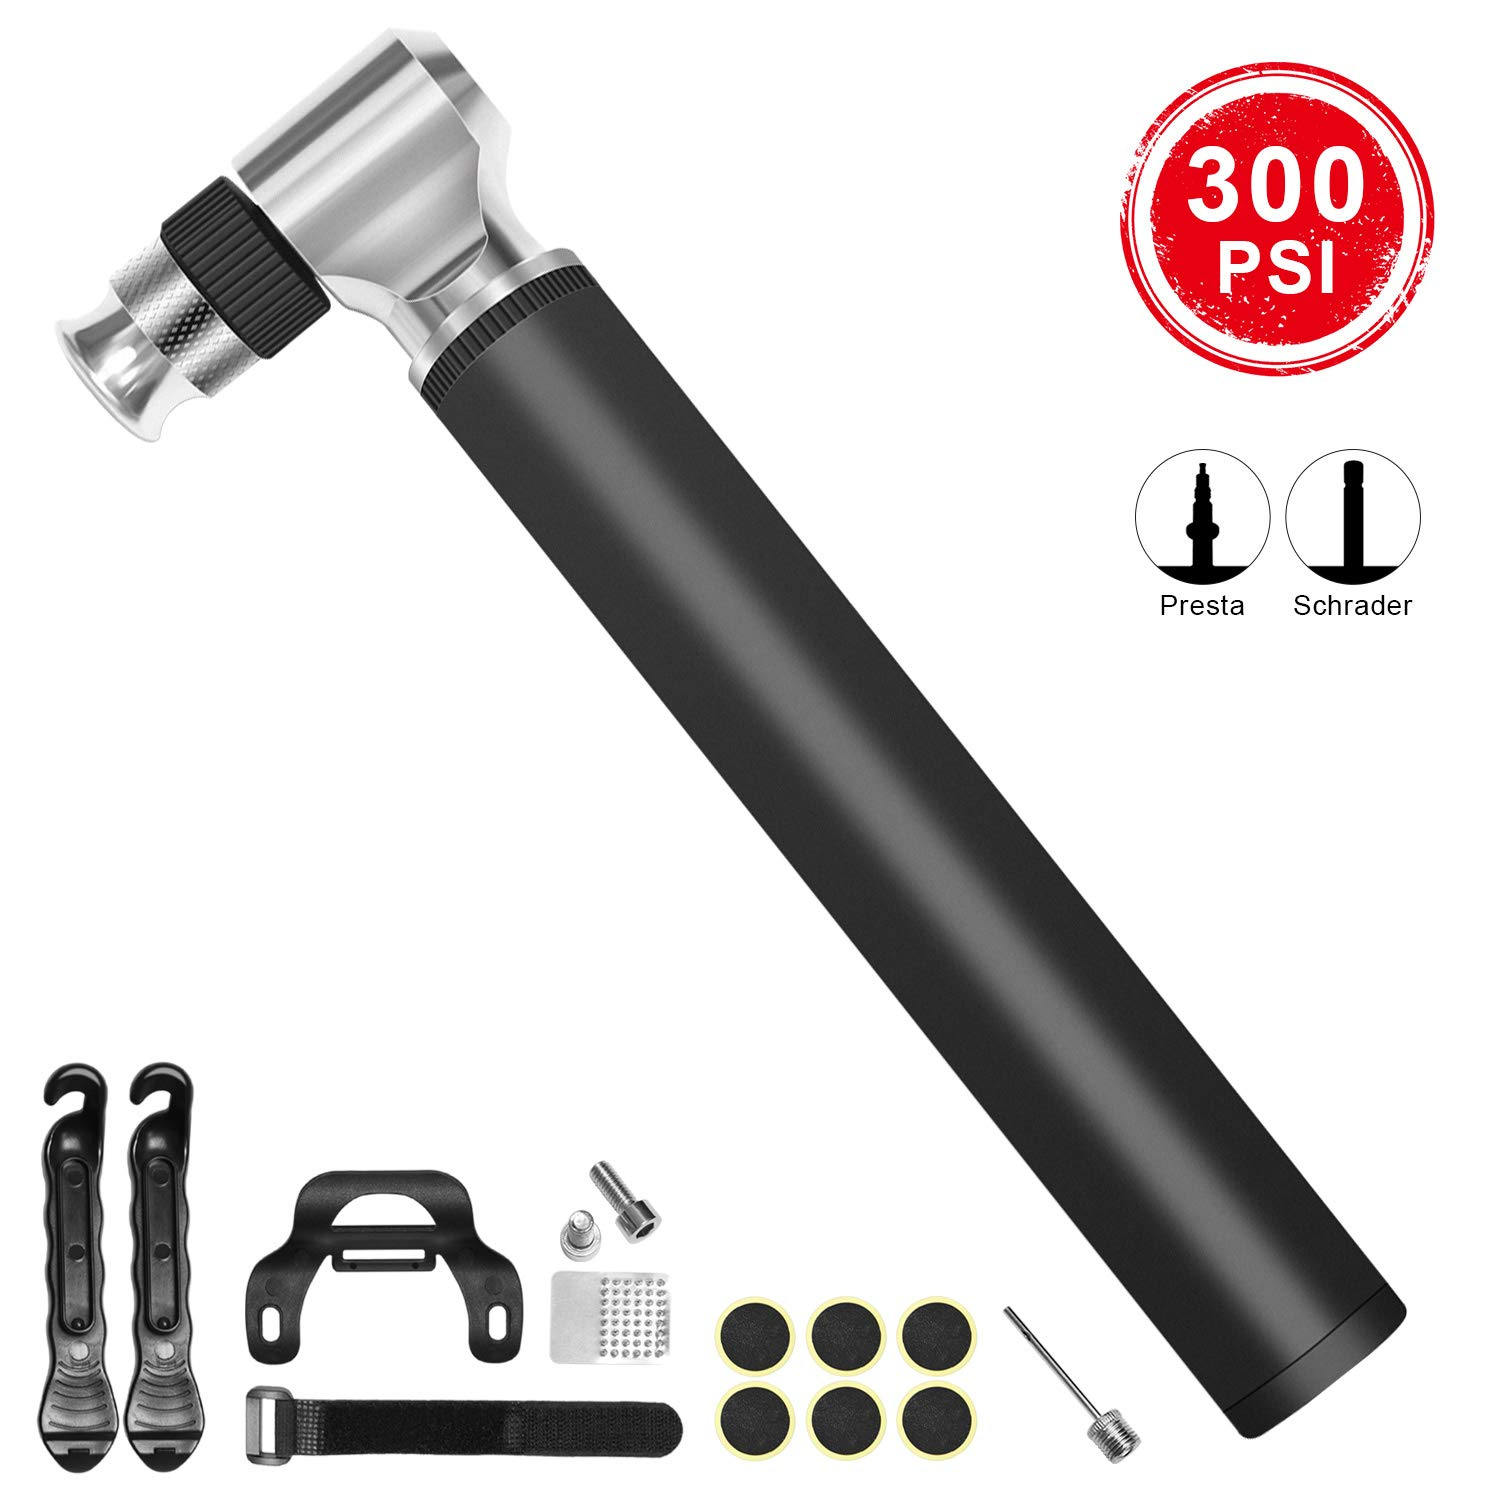 DTNO.I Mini Bike Pump Portable, High Pressure 300PSI Bicycle Air Pump Fits Presta and Schrader Value, Portable Bike Air Pump with Glueless Puncture Repair Kit for Road Mountain Bikes and Sports Ball